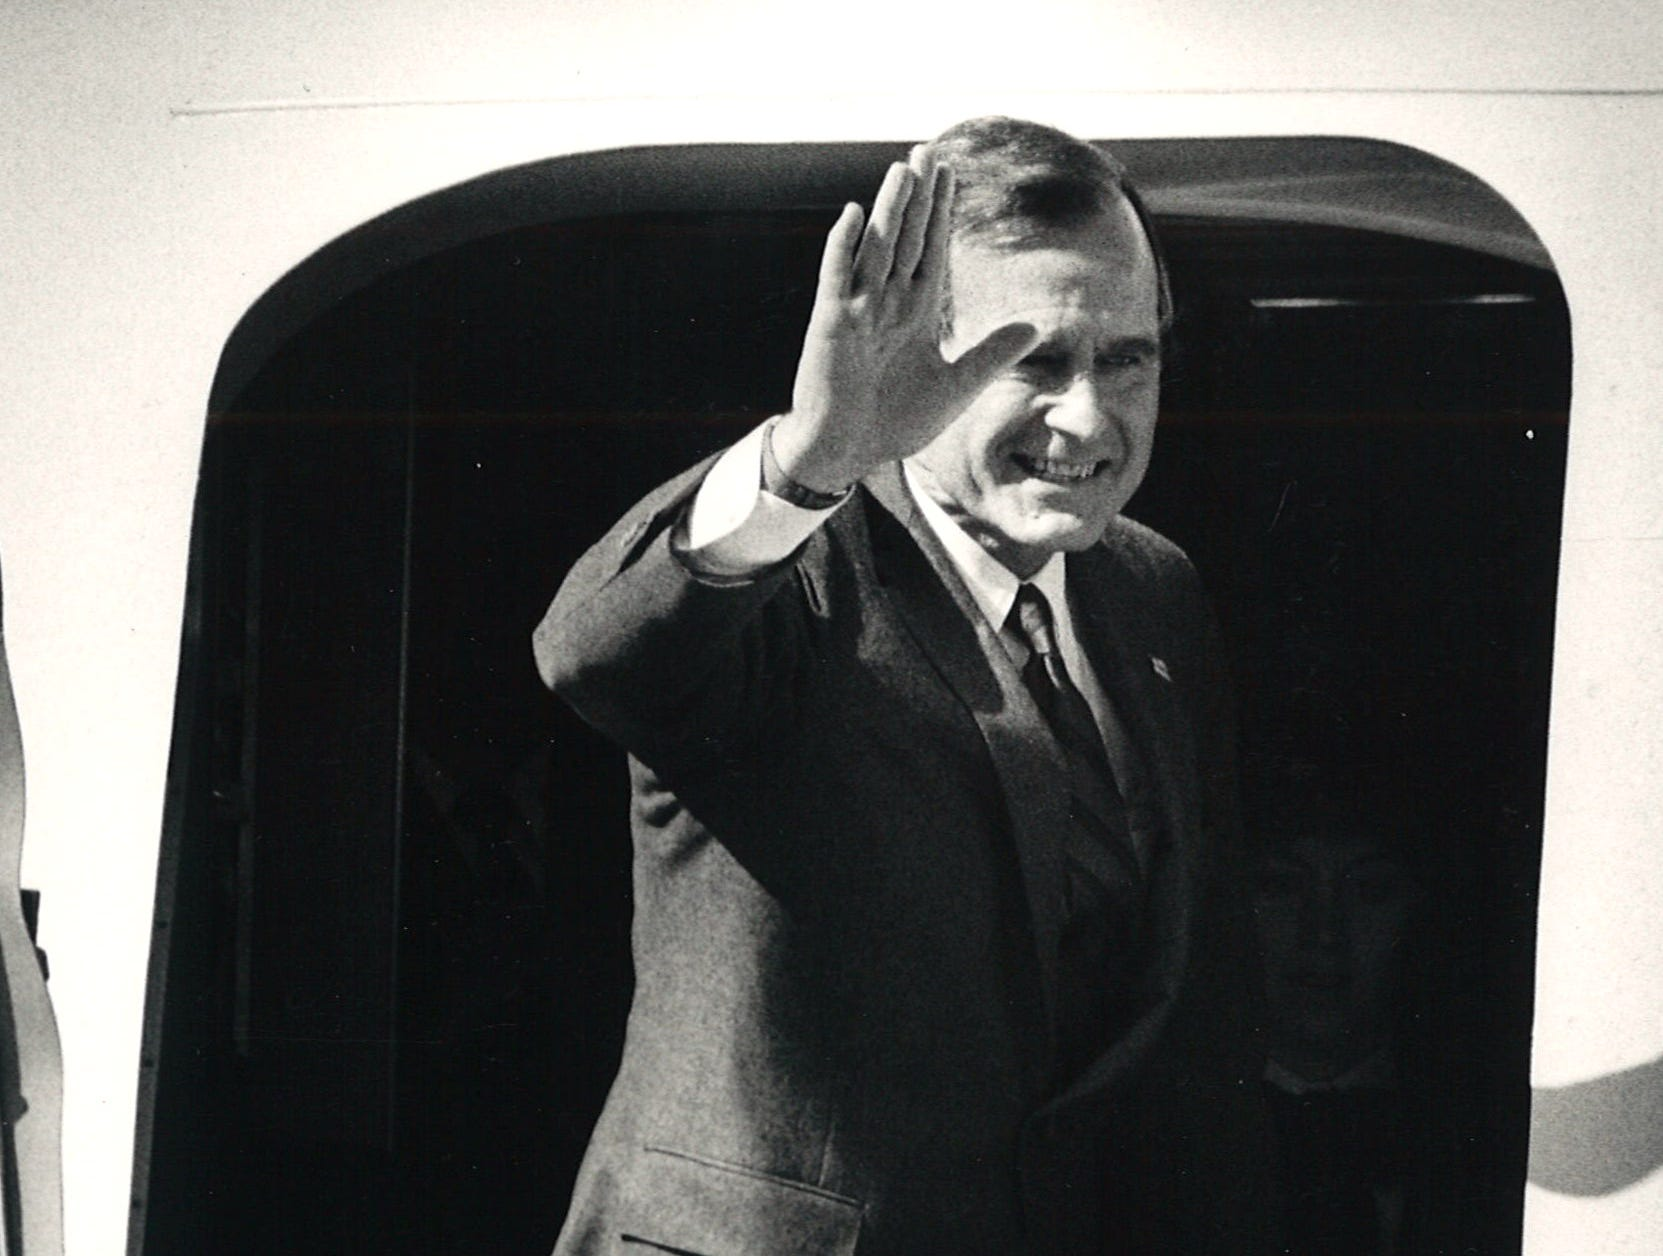 Vice president George Bush waves goodbye to Corpus Christi's Naval Air Station outside the cabin door to Air Force Two on March 4, 1986. He was winding up a four-day visit to Texas.